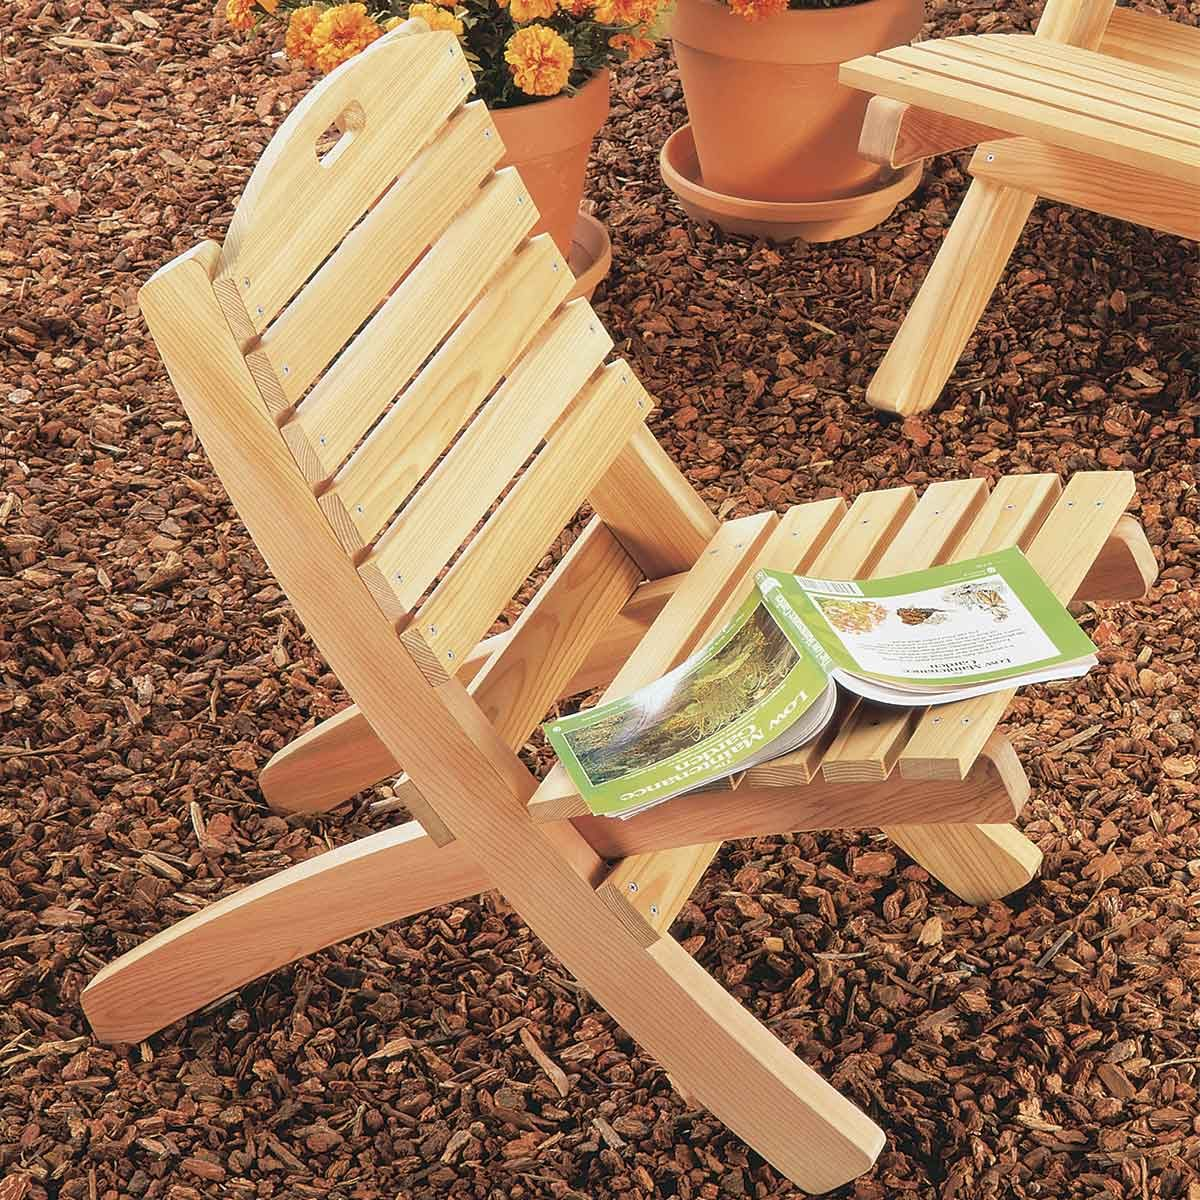 10 Easy Outdoor Chairs You Can Build  The Family Handyman